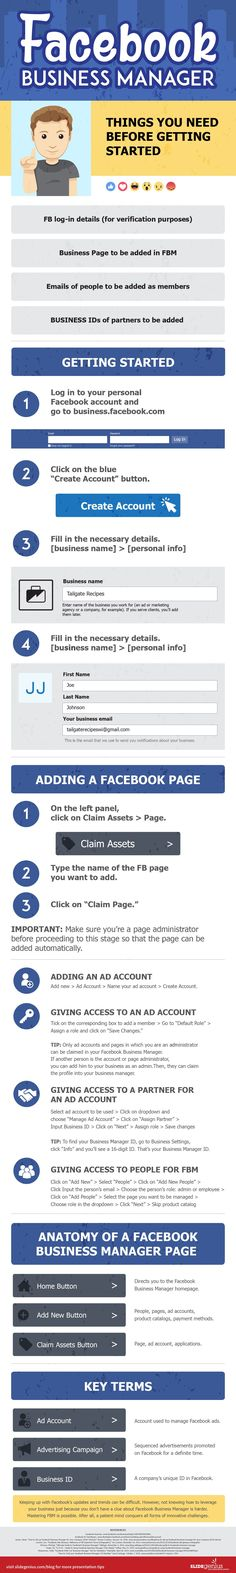 A Step-by-Step Guide to Facebook Business Manager - infographic - Love a good success story? Learn how I went from zero to 1 million in sales in 5 months with an e-commerce store.